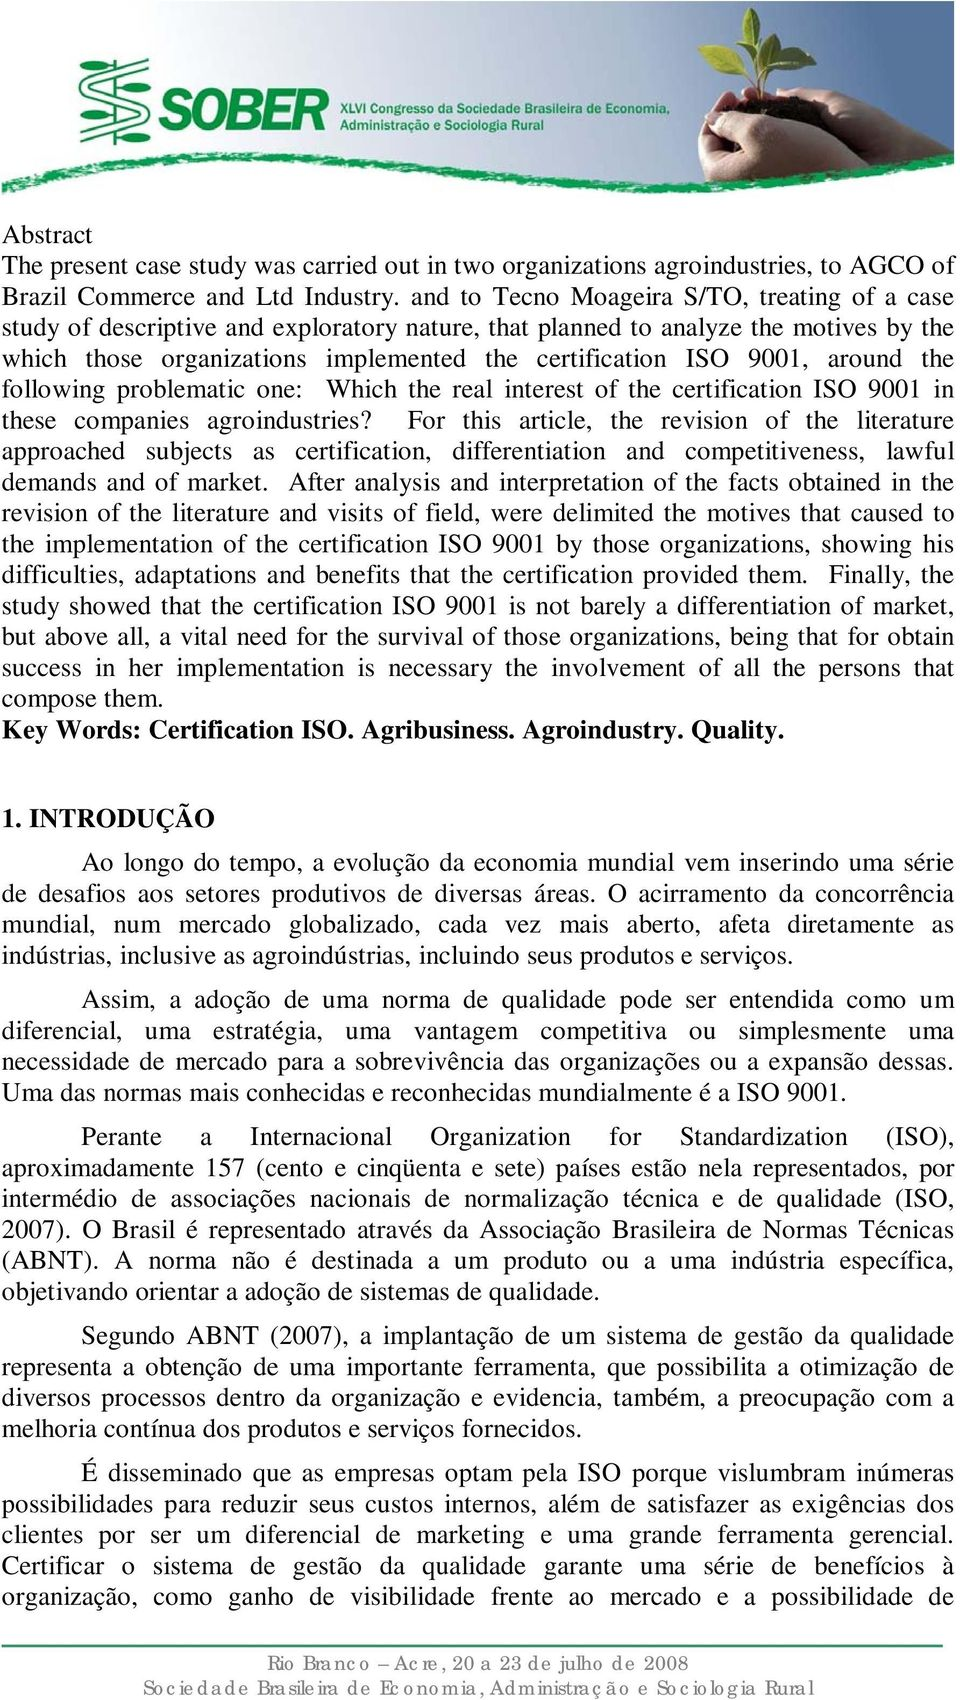 9001, around the following problematic one: Which the real interest of the certification ISO 9001 in these companies agroindustries?